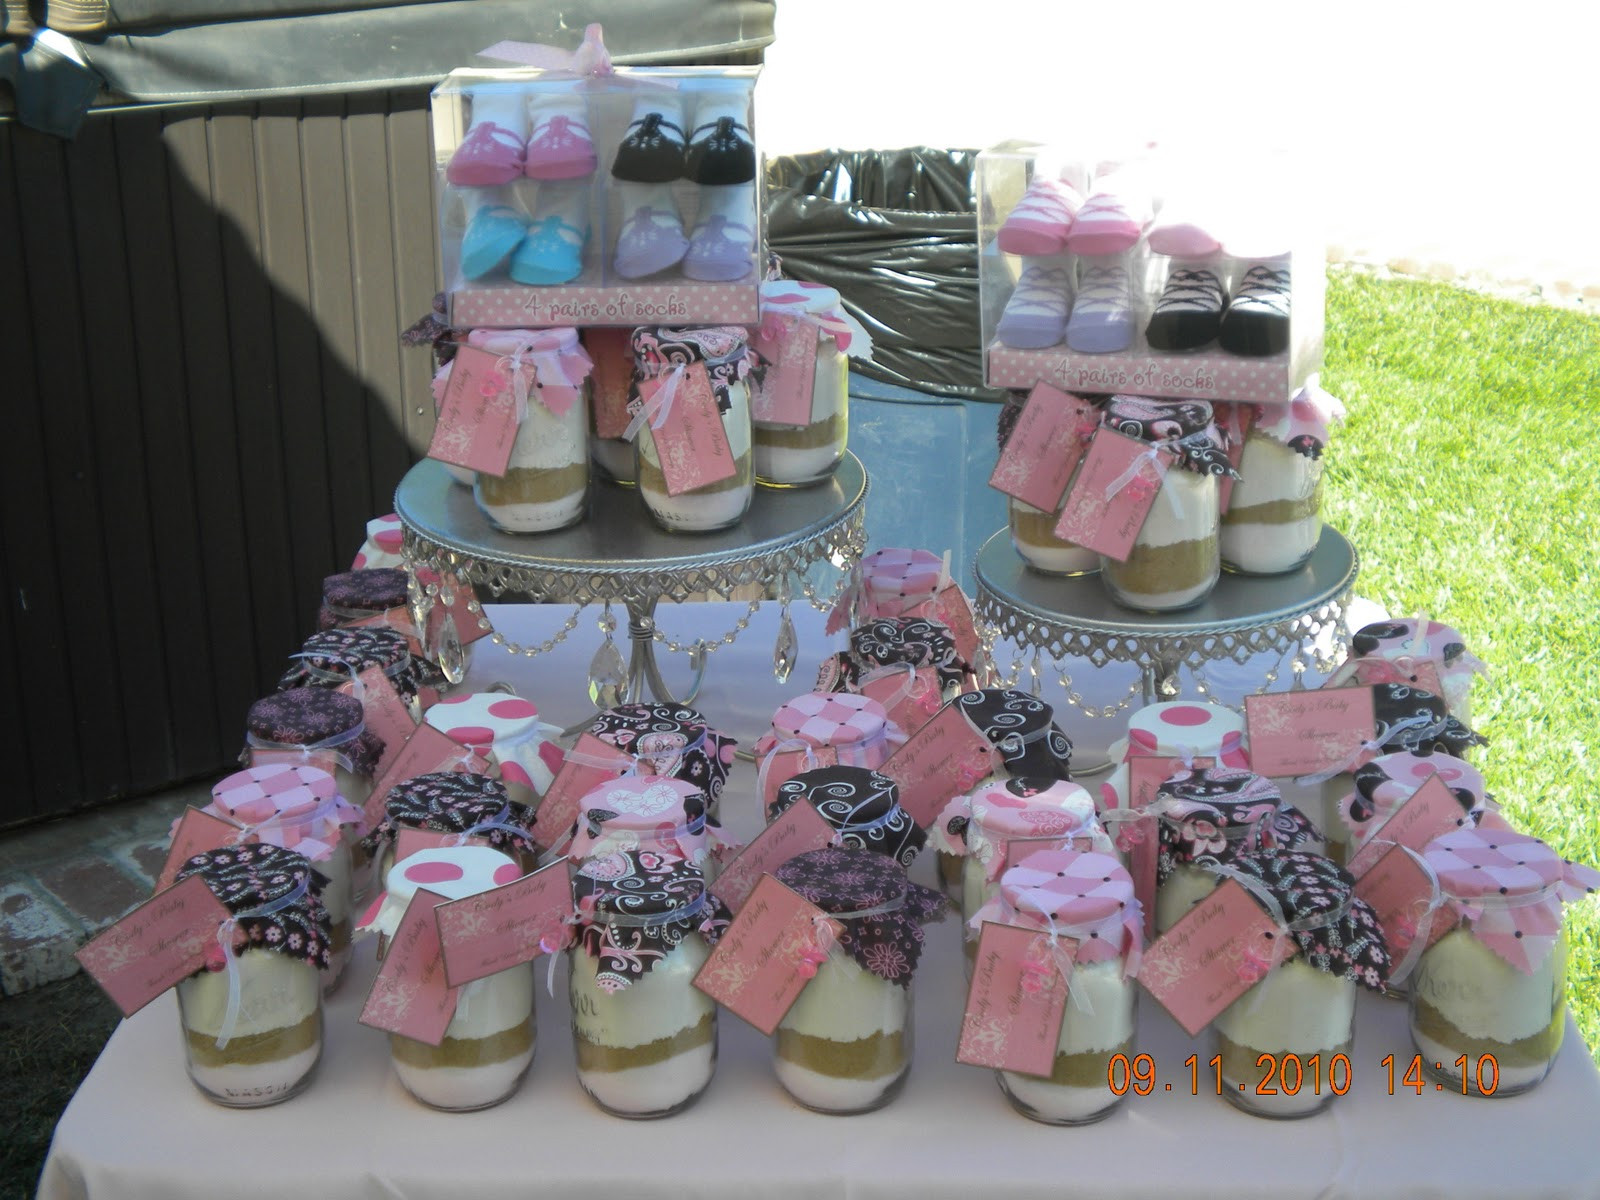 Best ideas about Baby Shower Guest Gift Ideas . Save or Pin Happily Ever After Designs Pink and Brown Baby Shower Now.